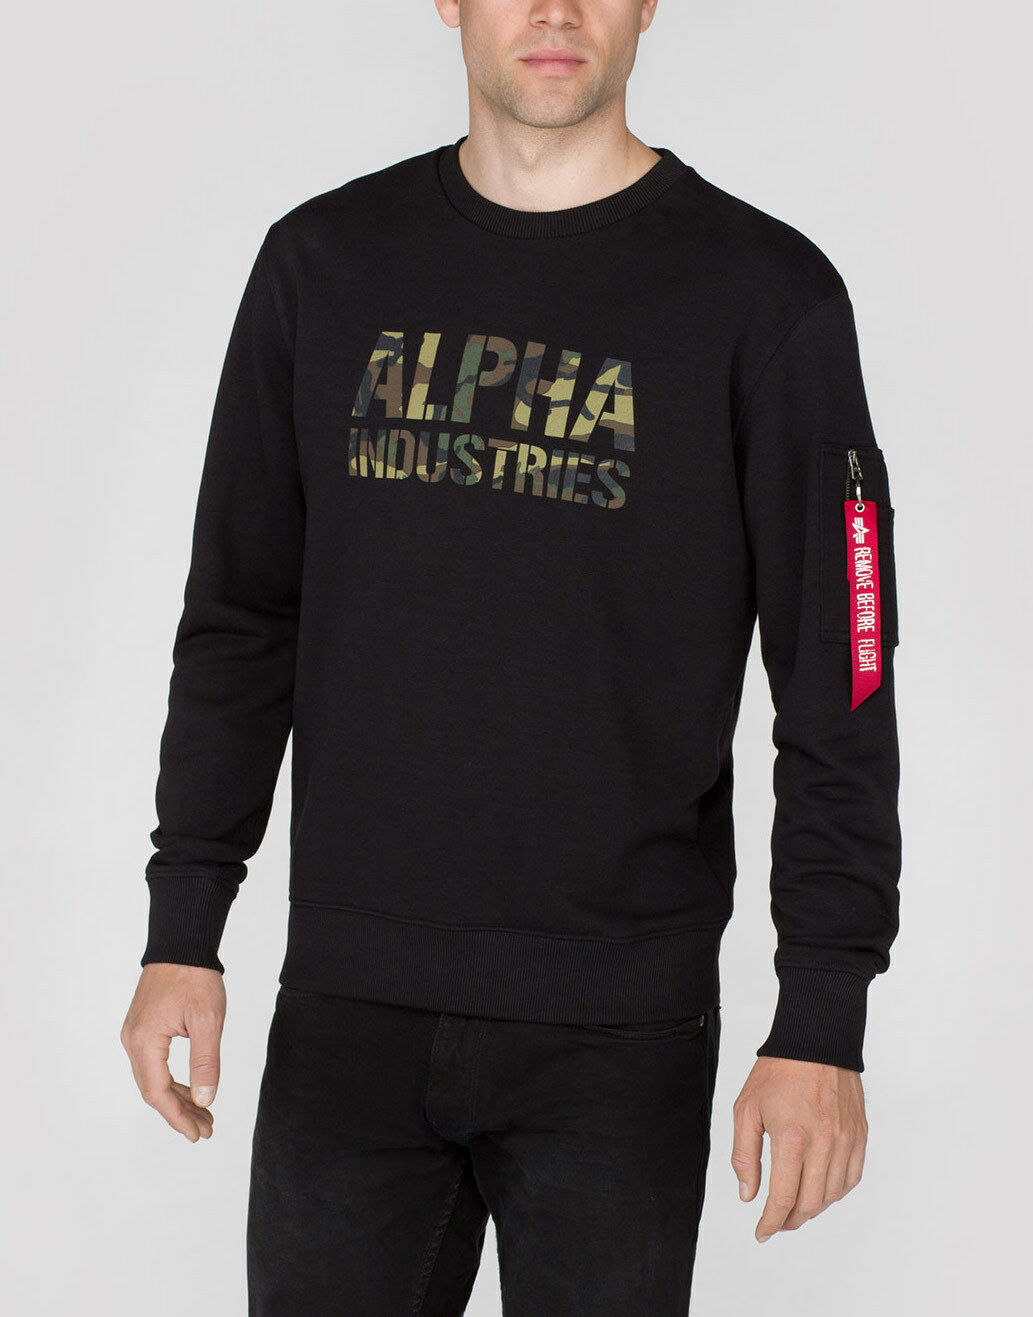 ALPHA INDUSTRIES Sweatshirt  Camo Print Sweat    schwarz Woodld.380 (176301) Logo